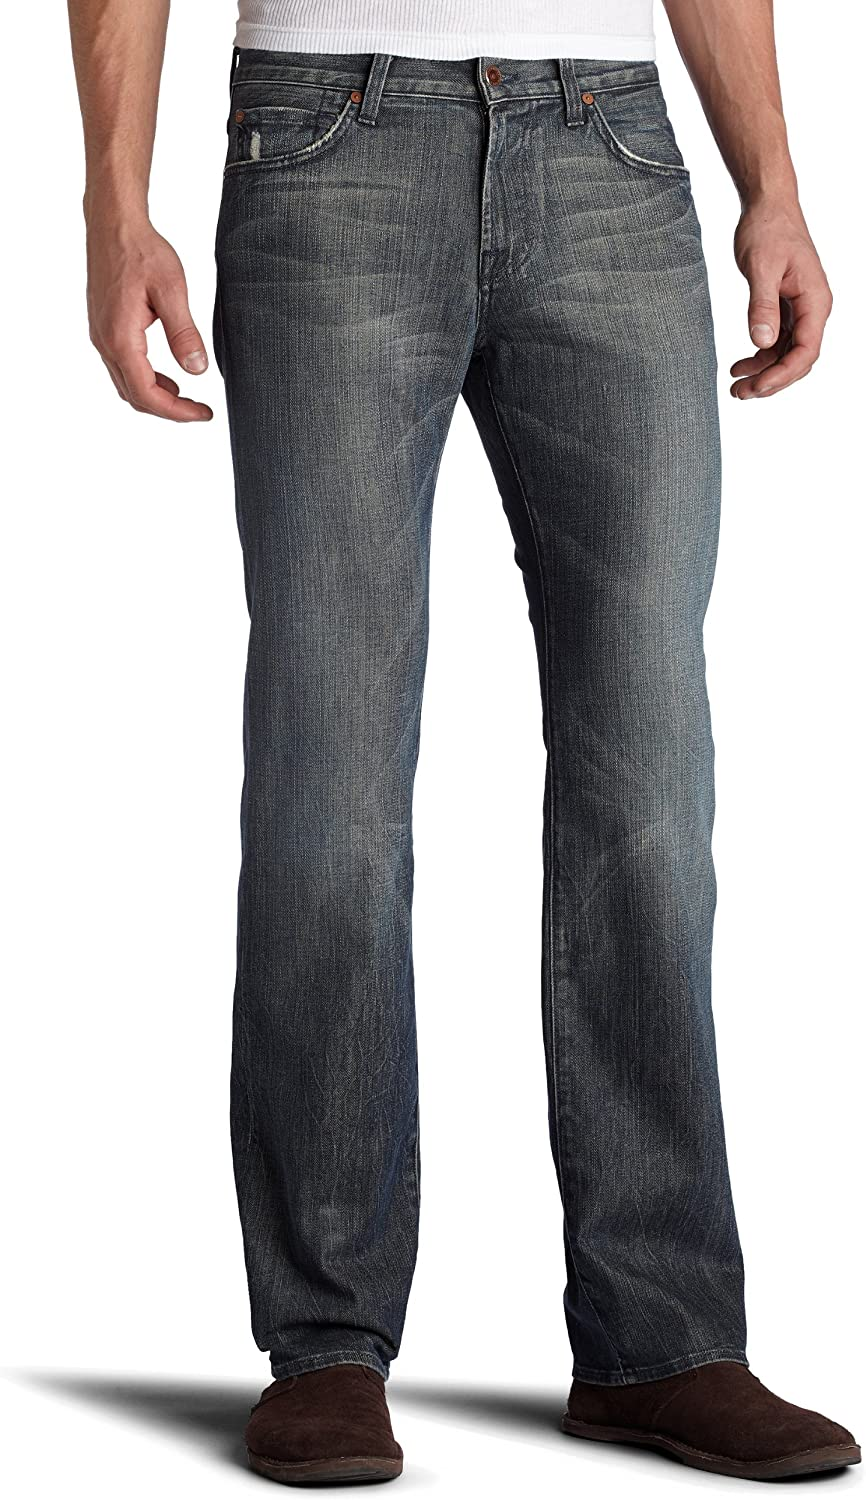 7 For All Mankind Men's Jeans Relaxed Fit Straight Leg Pant, Melbourne - Austyn, 40